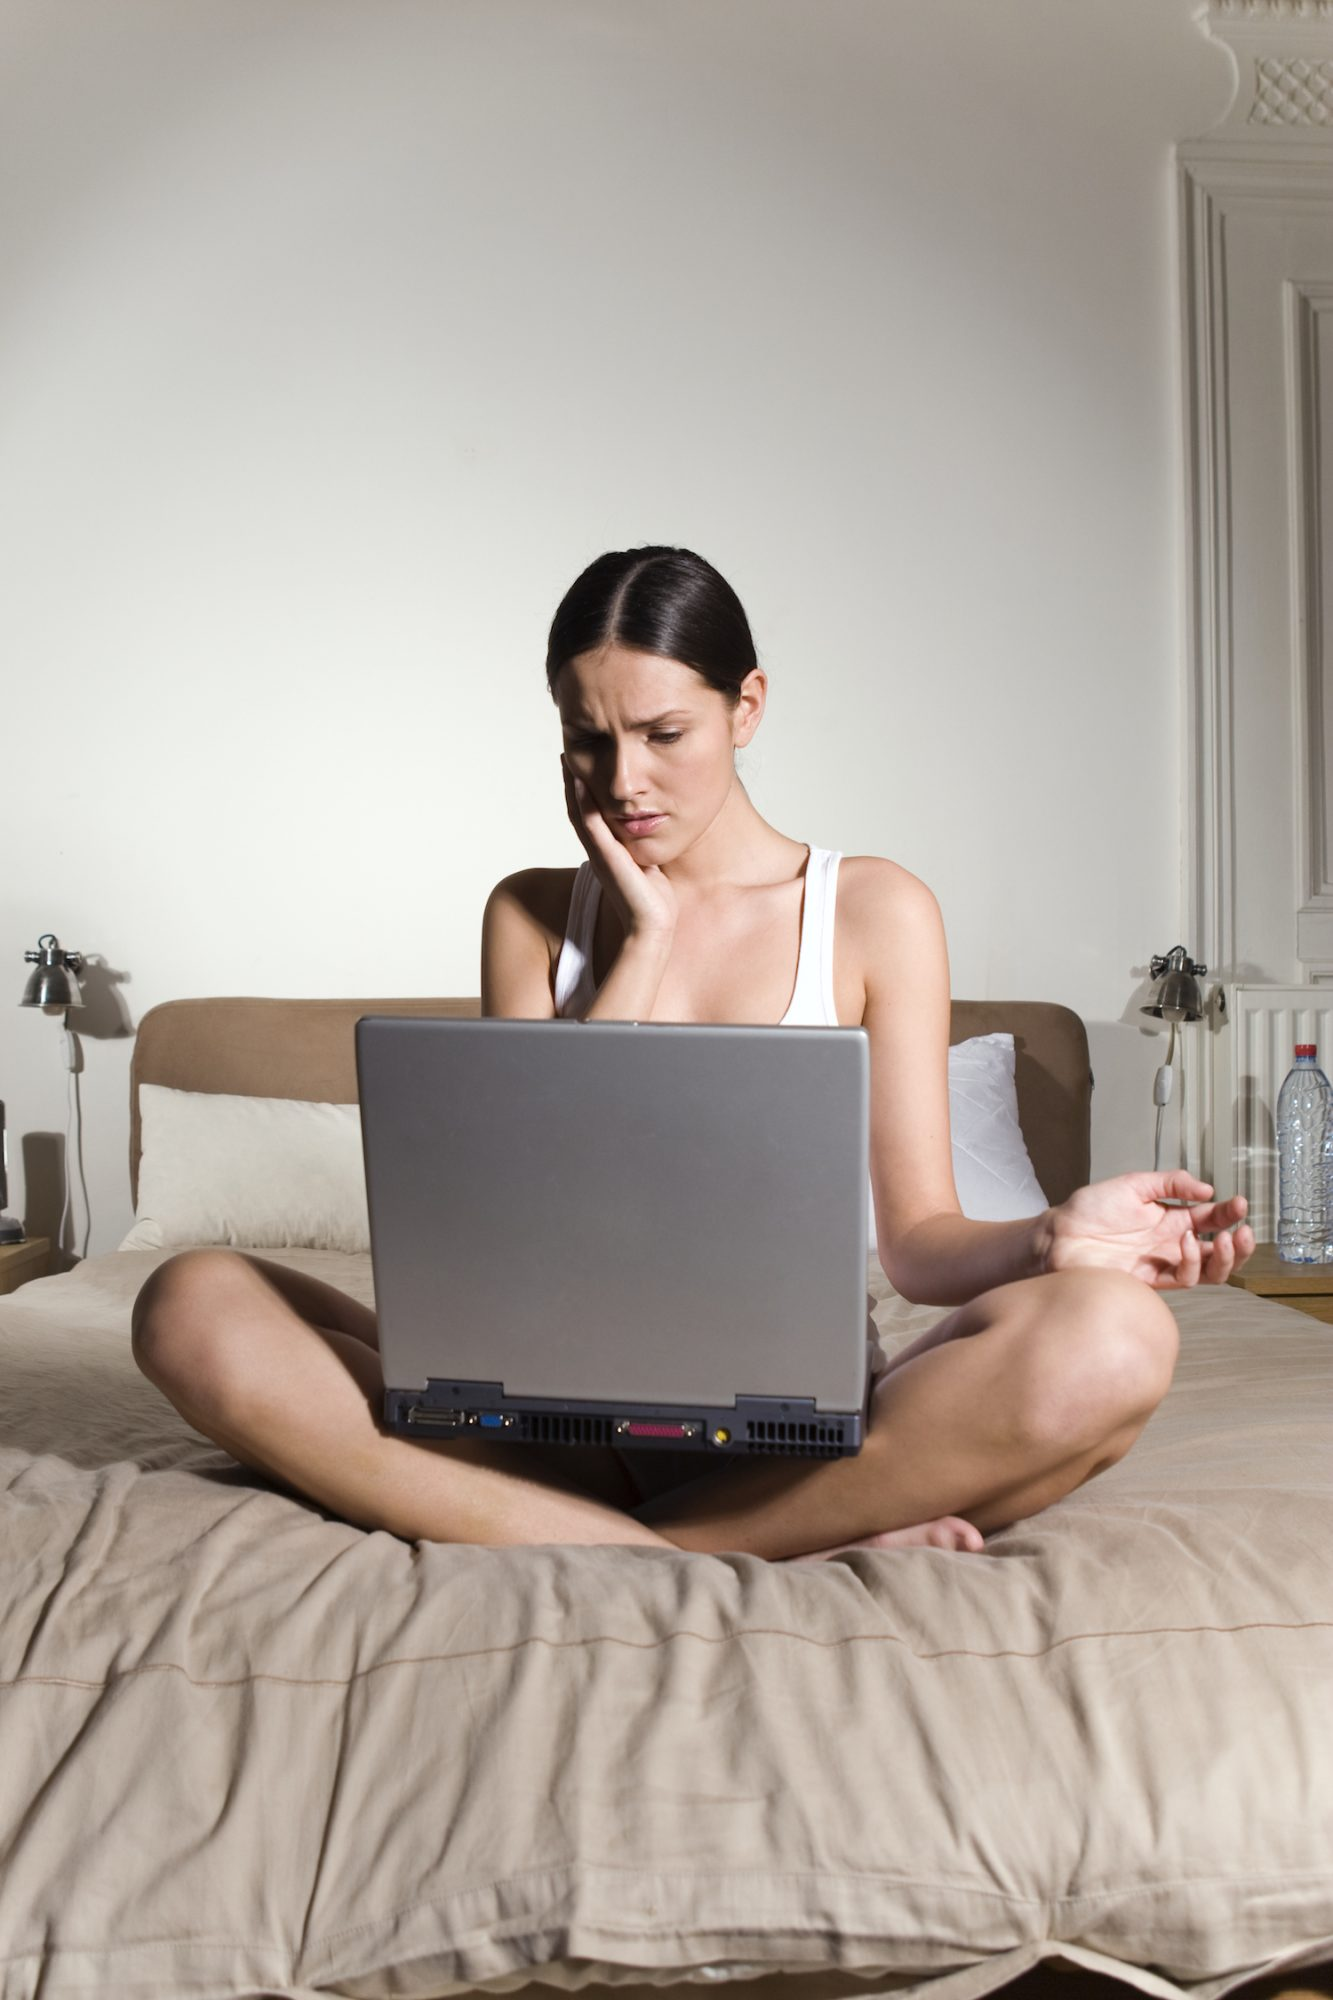 women nervous stressed on computer in bed